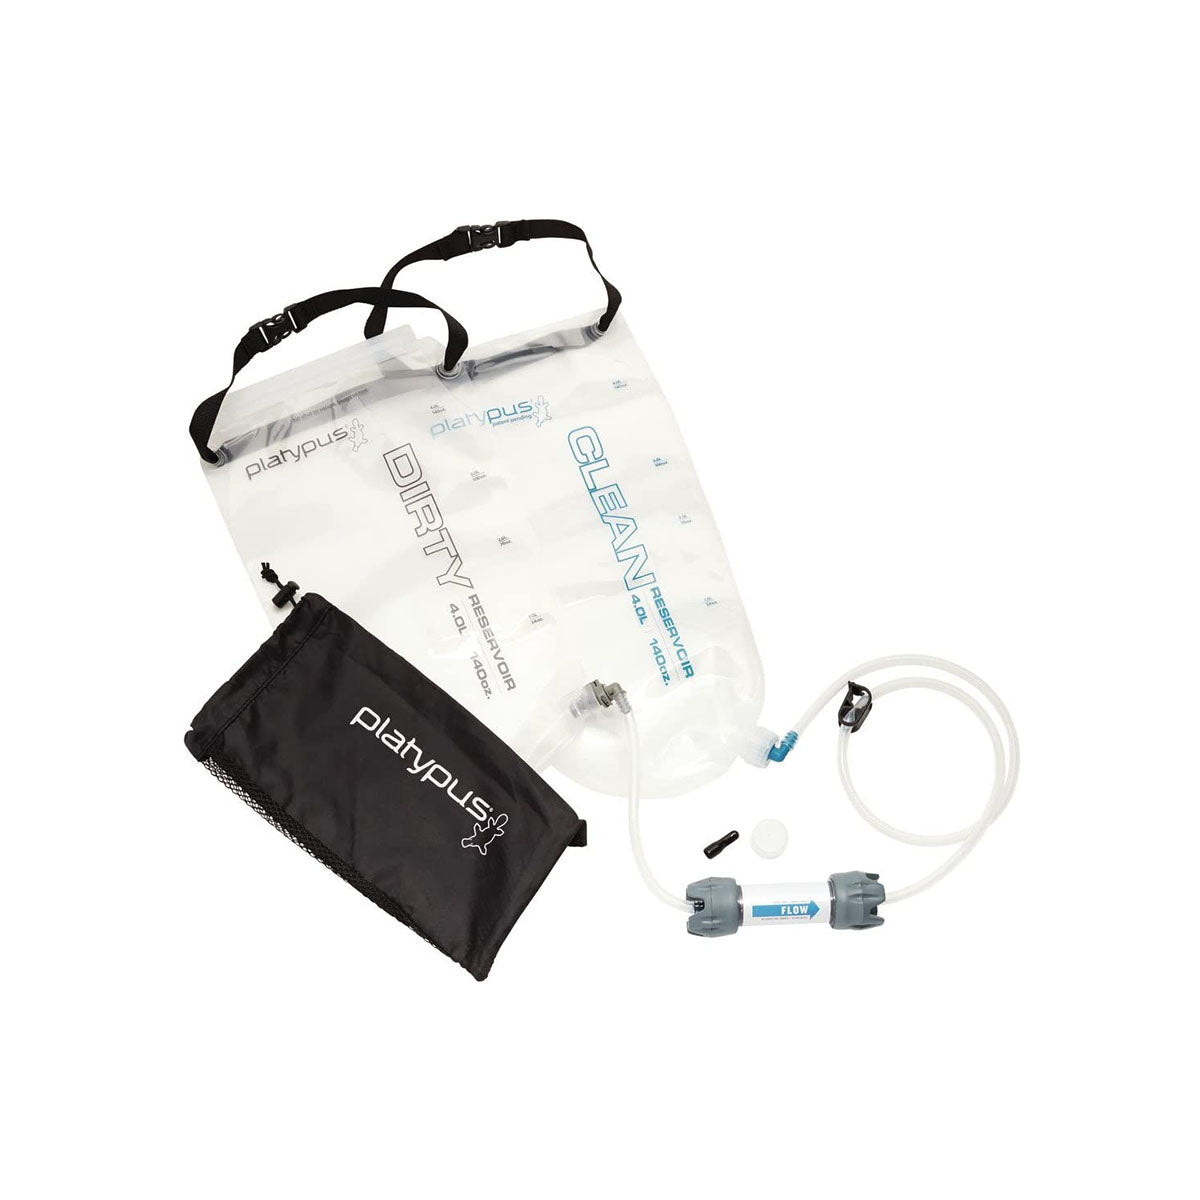 Water Filters & Purifiers: Platypus GravityWorks 4L Complete Water Filter Kit